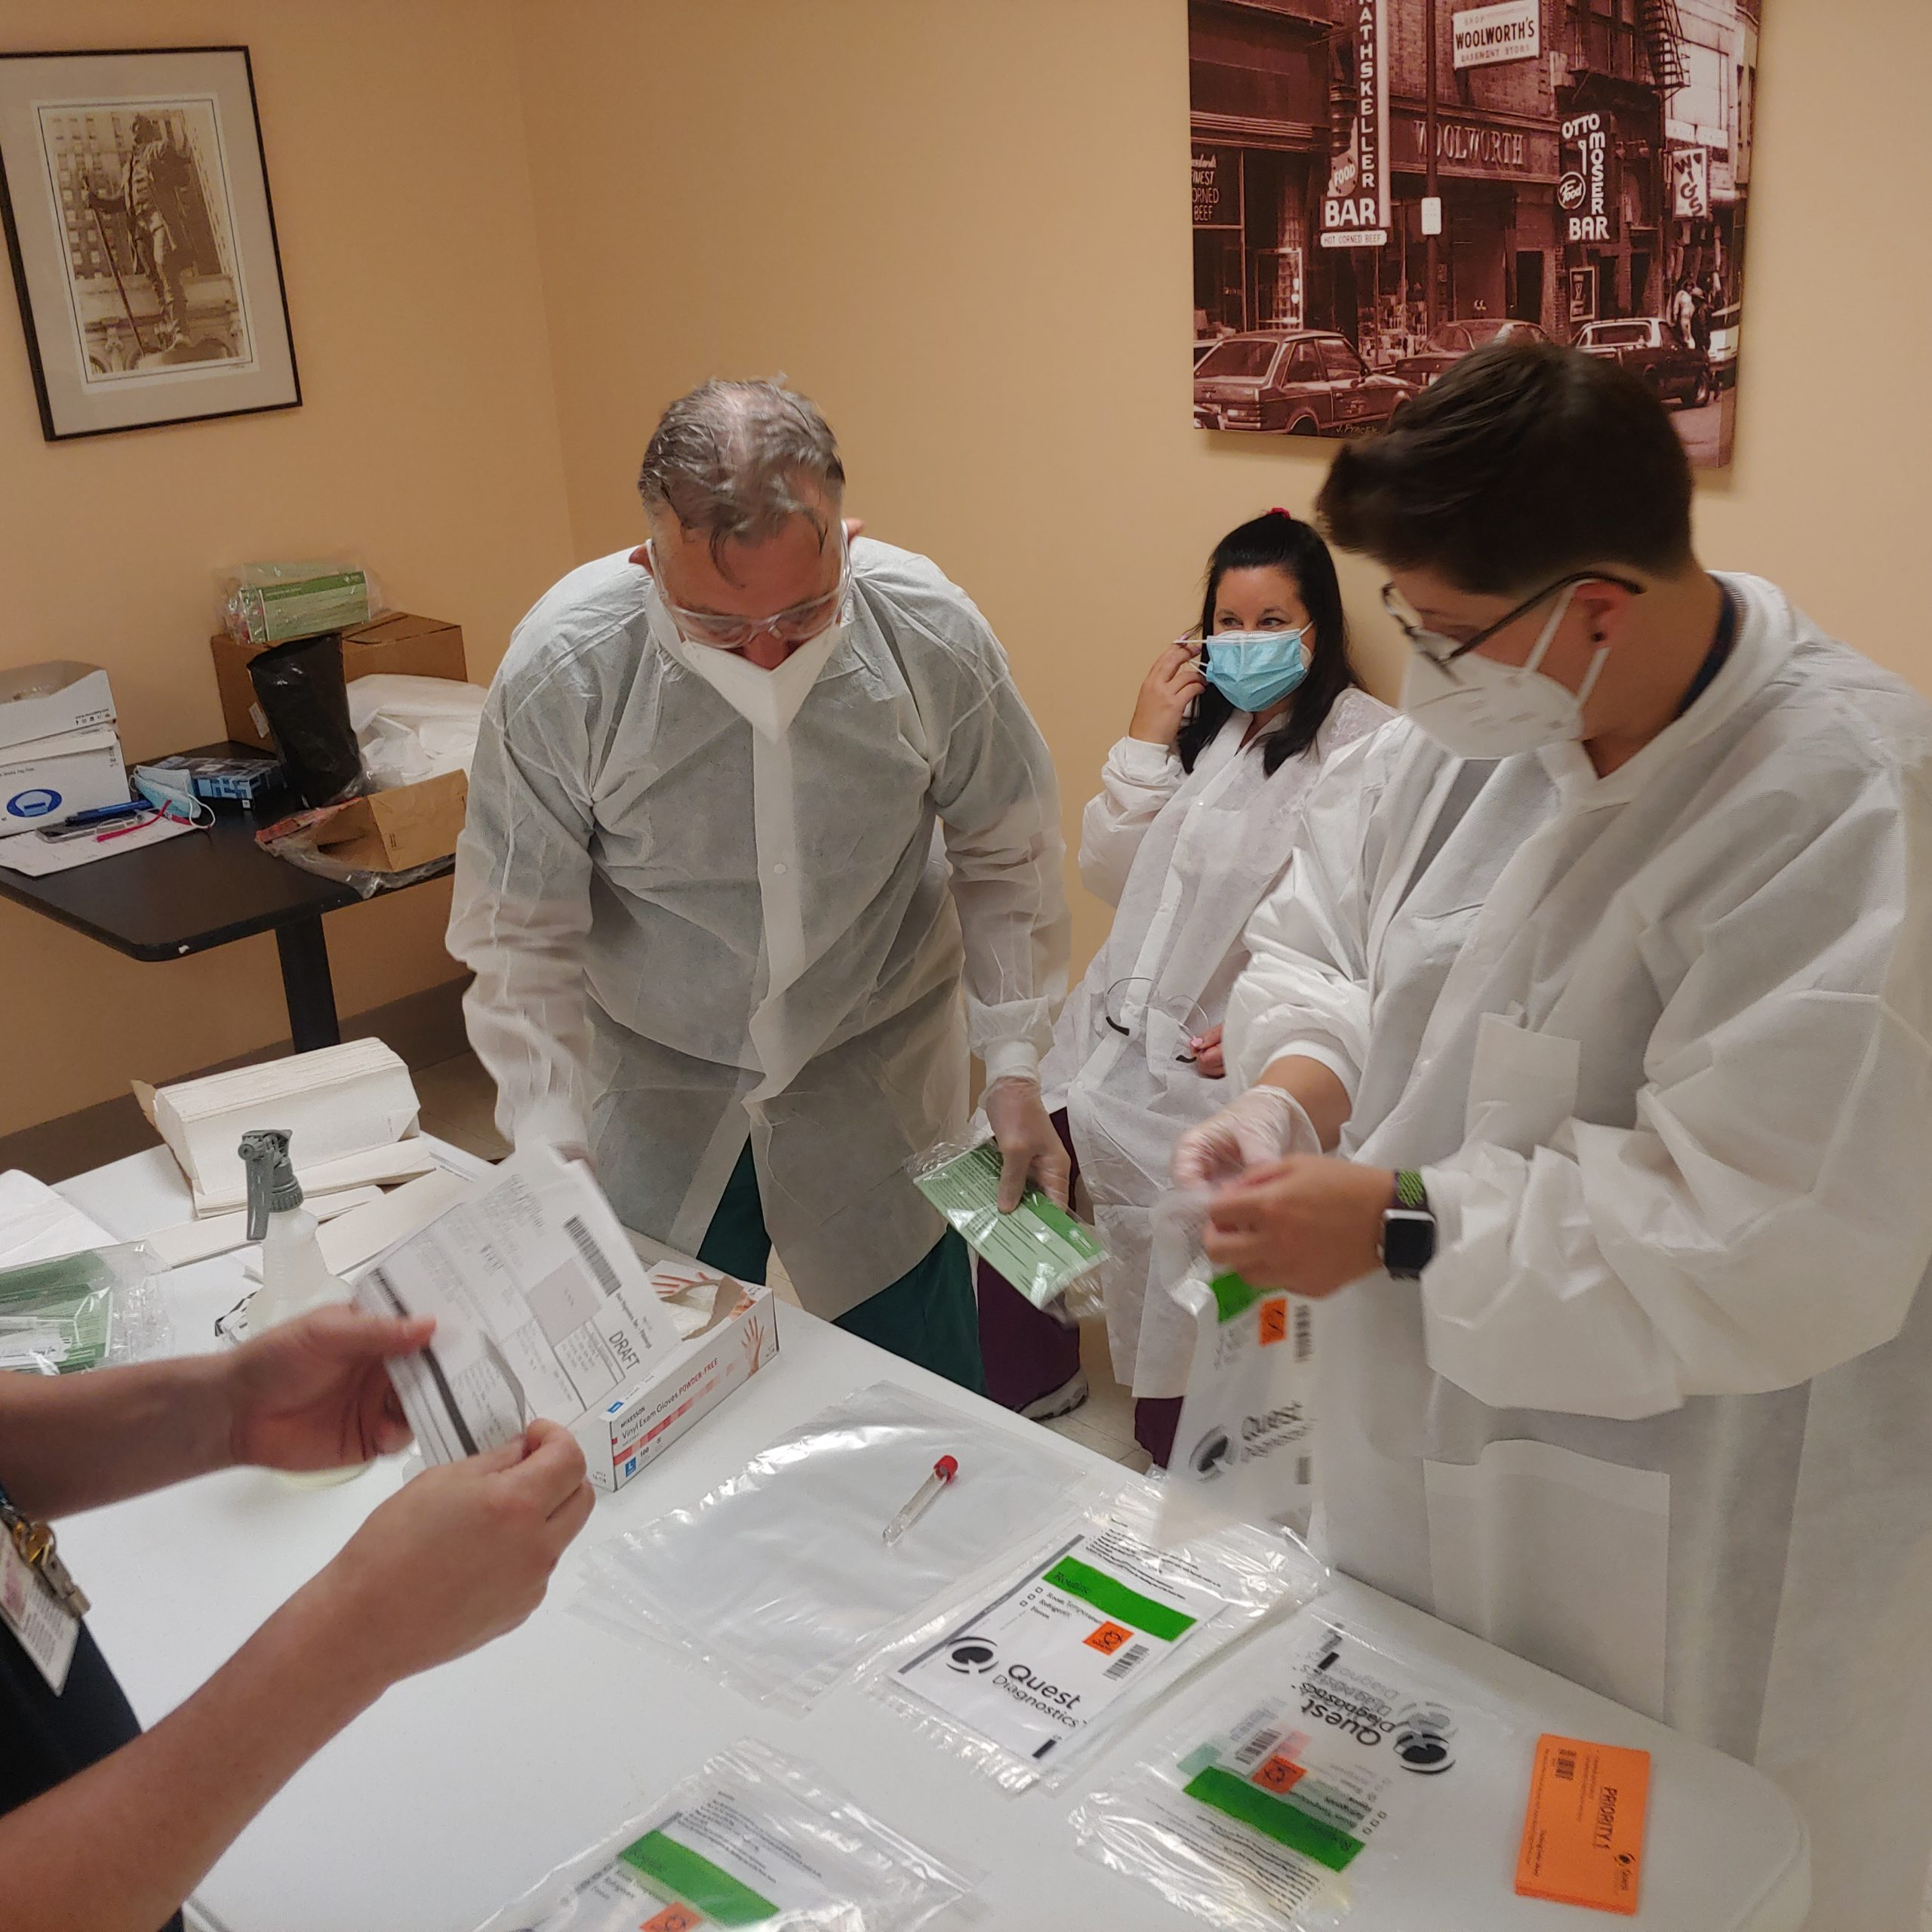 Staff members in PPE  in compliance with COVID-19 infection control preparing COVID-19 testing kits